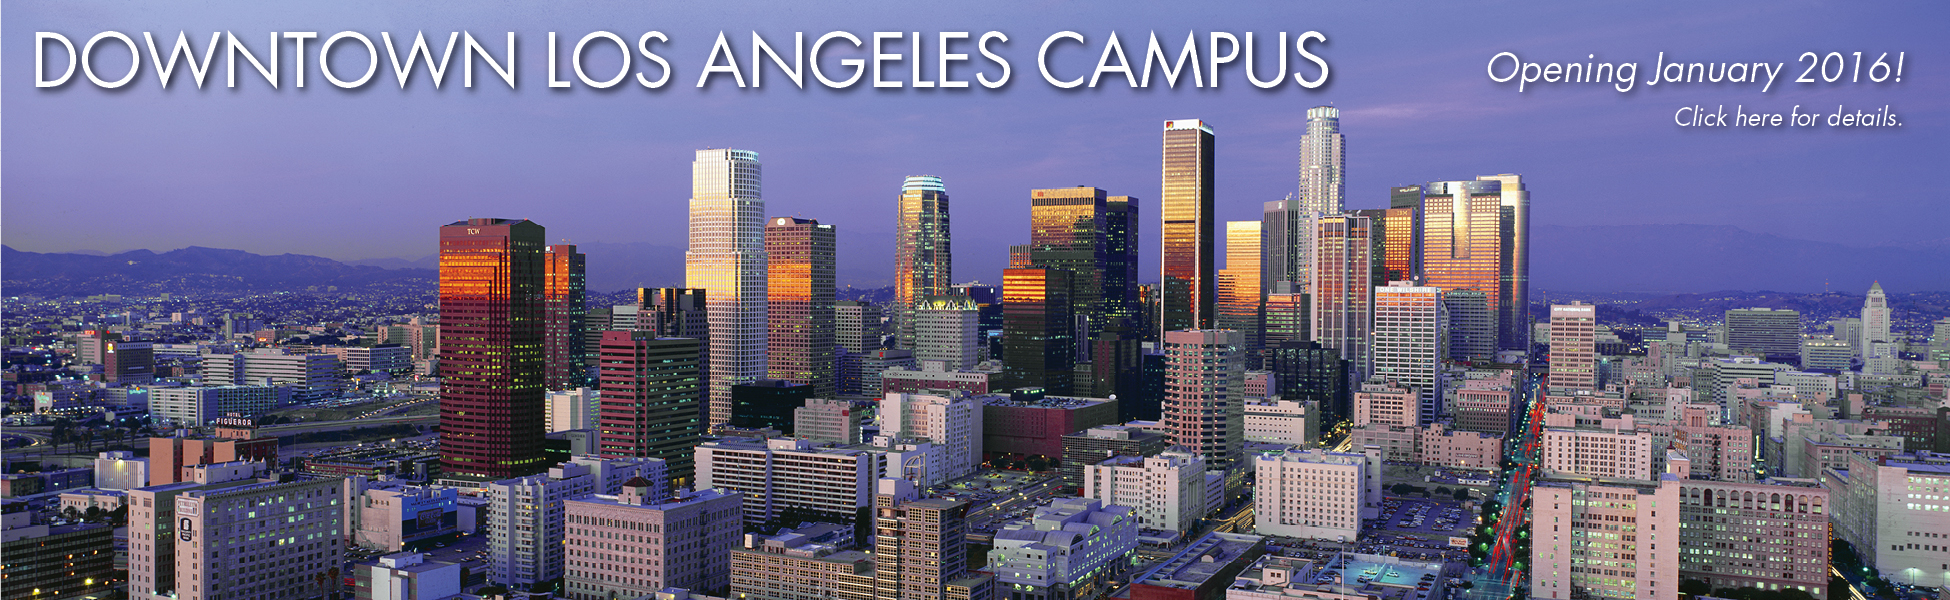 Cal State L.A. Downtown Los Angeles Campus